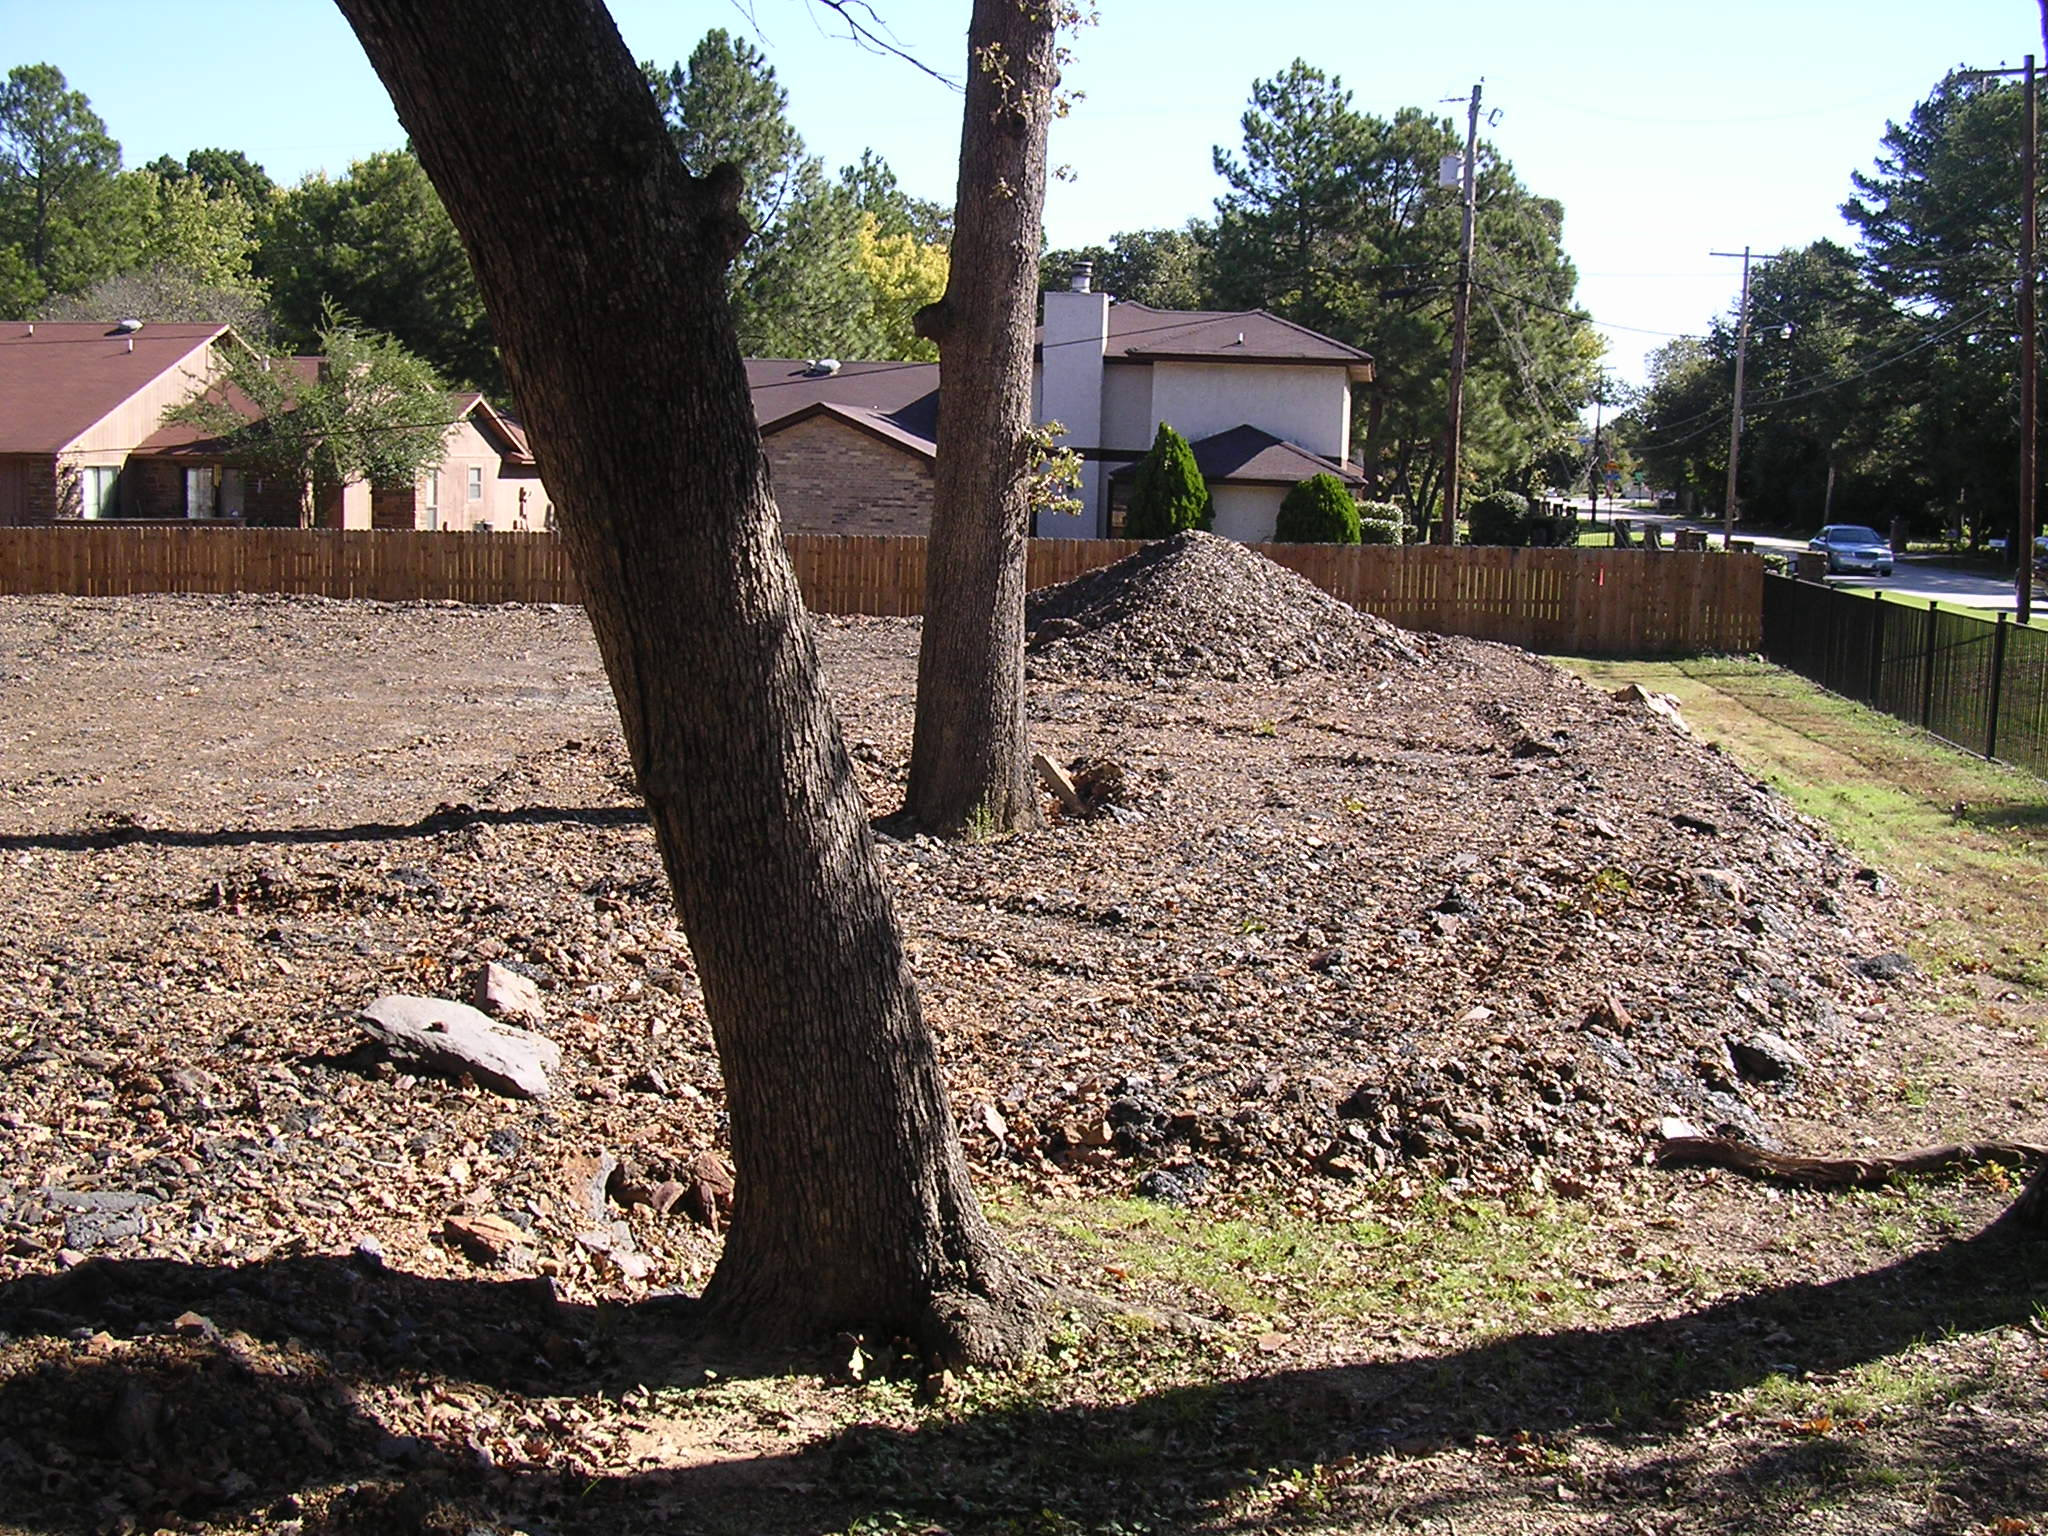 photo of soil piled up around tree roots in a new yard